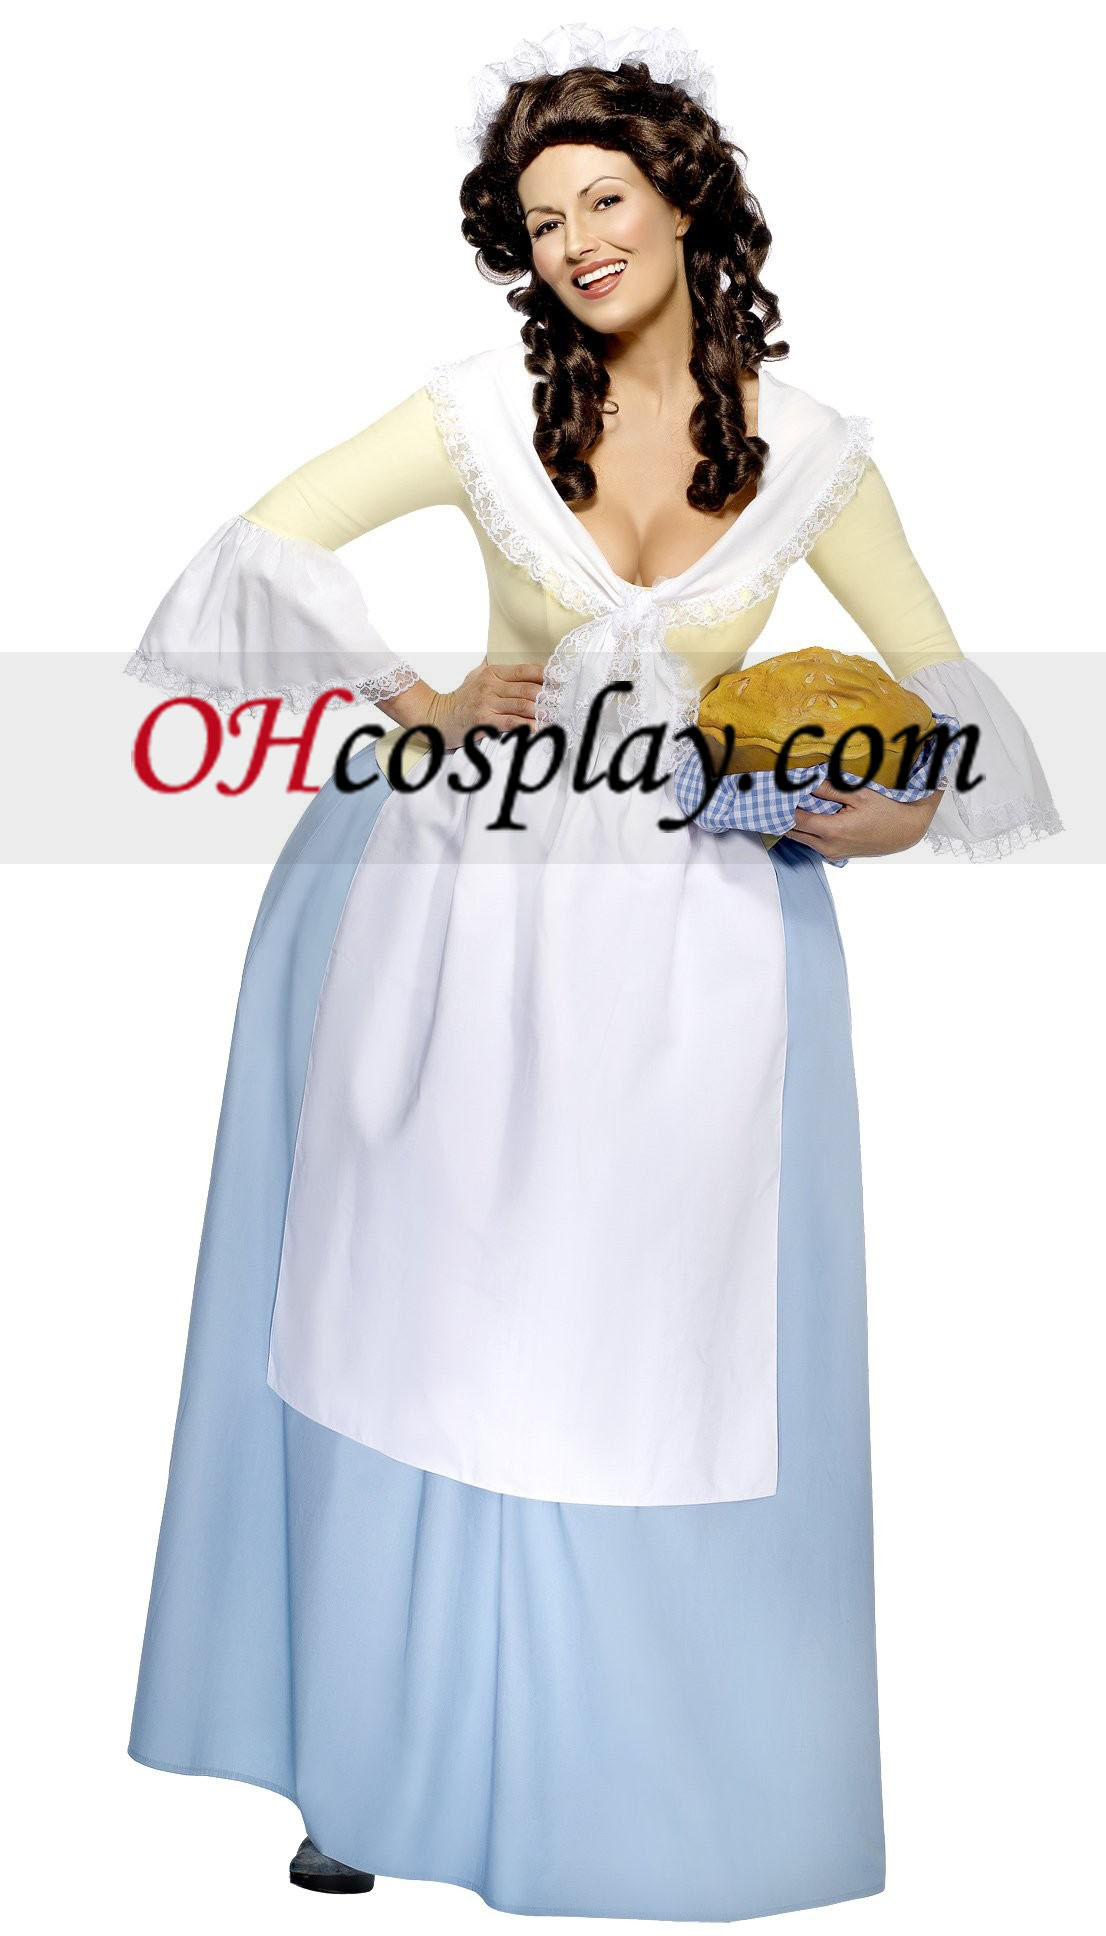 Tales of Old London Mrs. Lovett Adult Cosplay Halloween Costume Buy Online